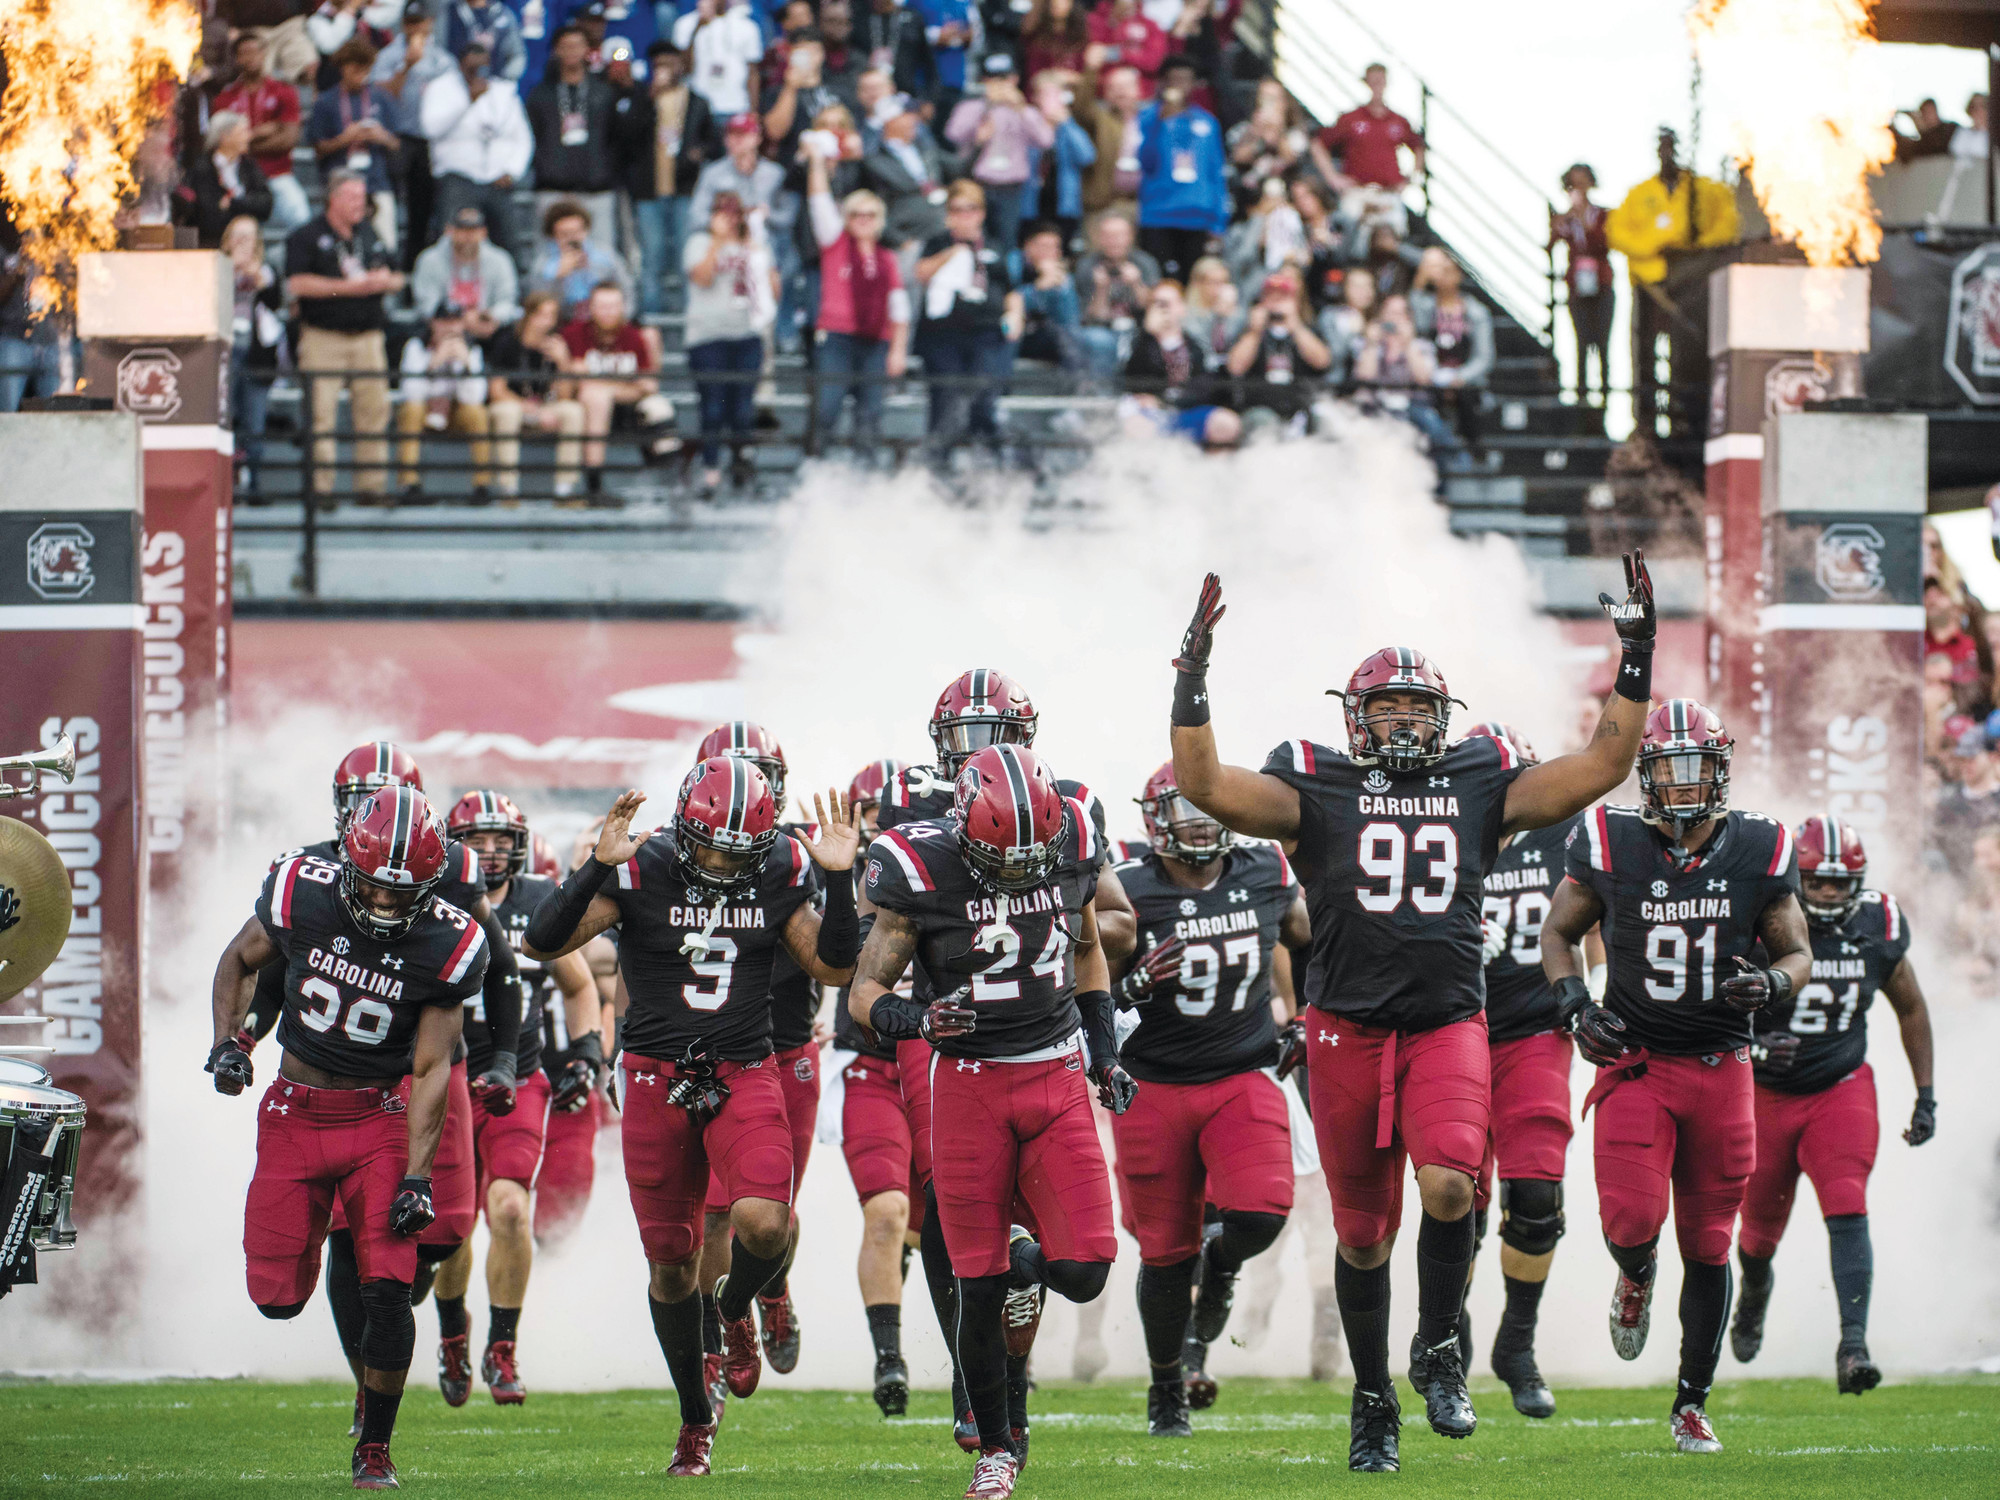 South Carolina defensive lineman Ulric Jones (93) leads the Gamecocks onto the field before their 2017 game against Wofford in Columbia. USC defeated the Terriers 31-10.